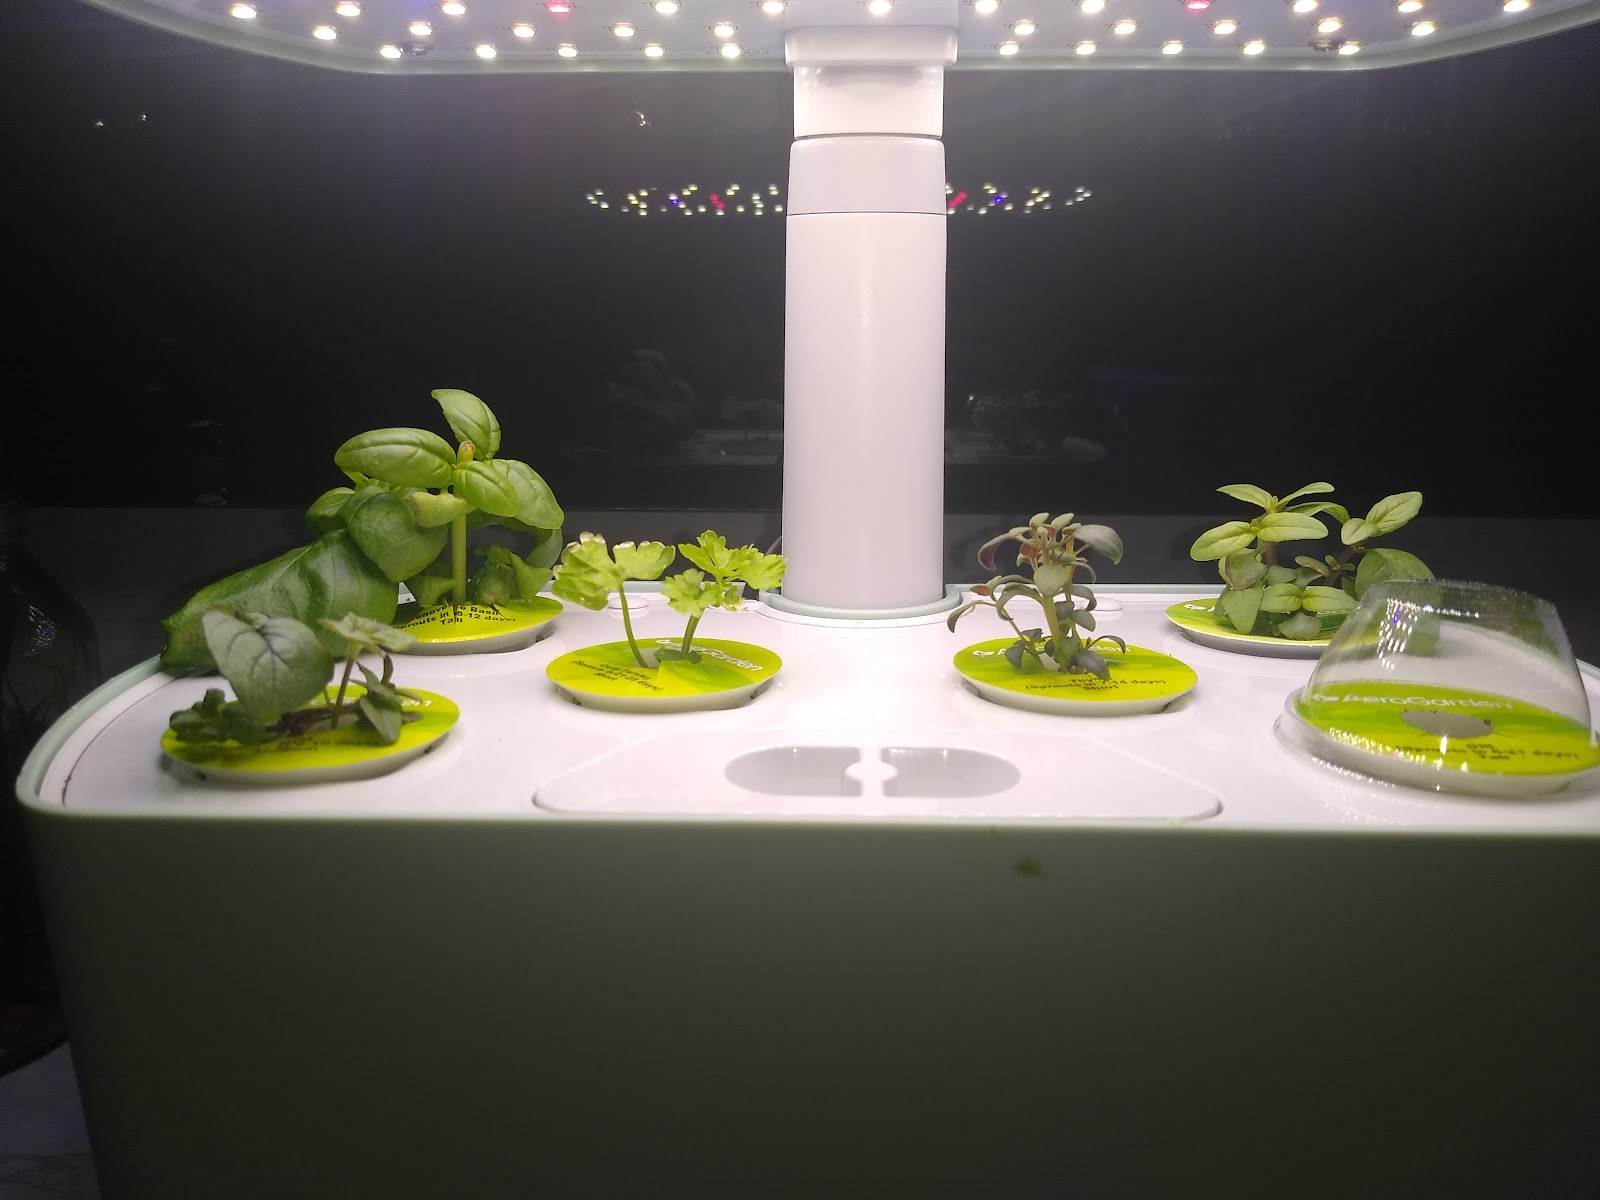 AeroGarden Harvest picture